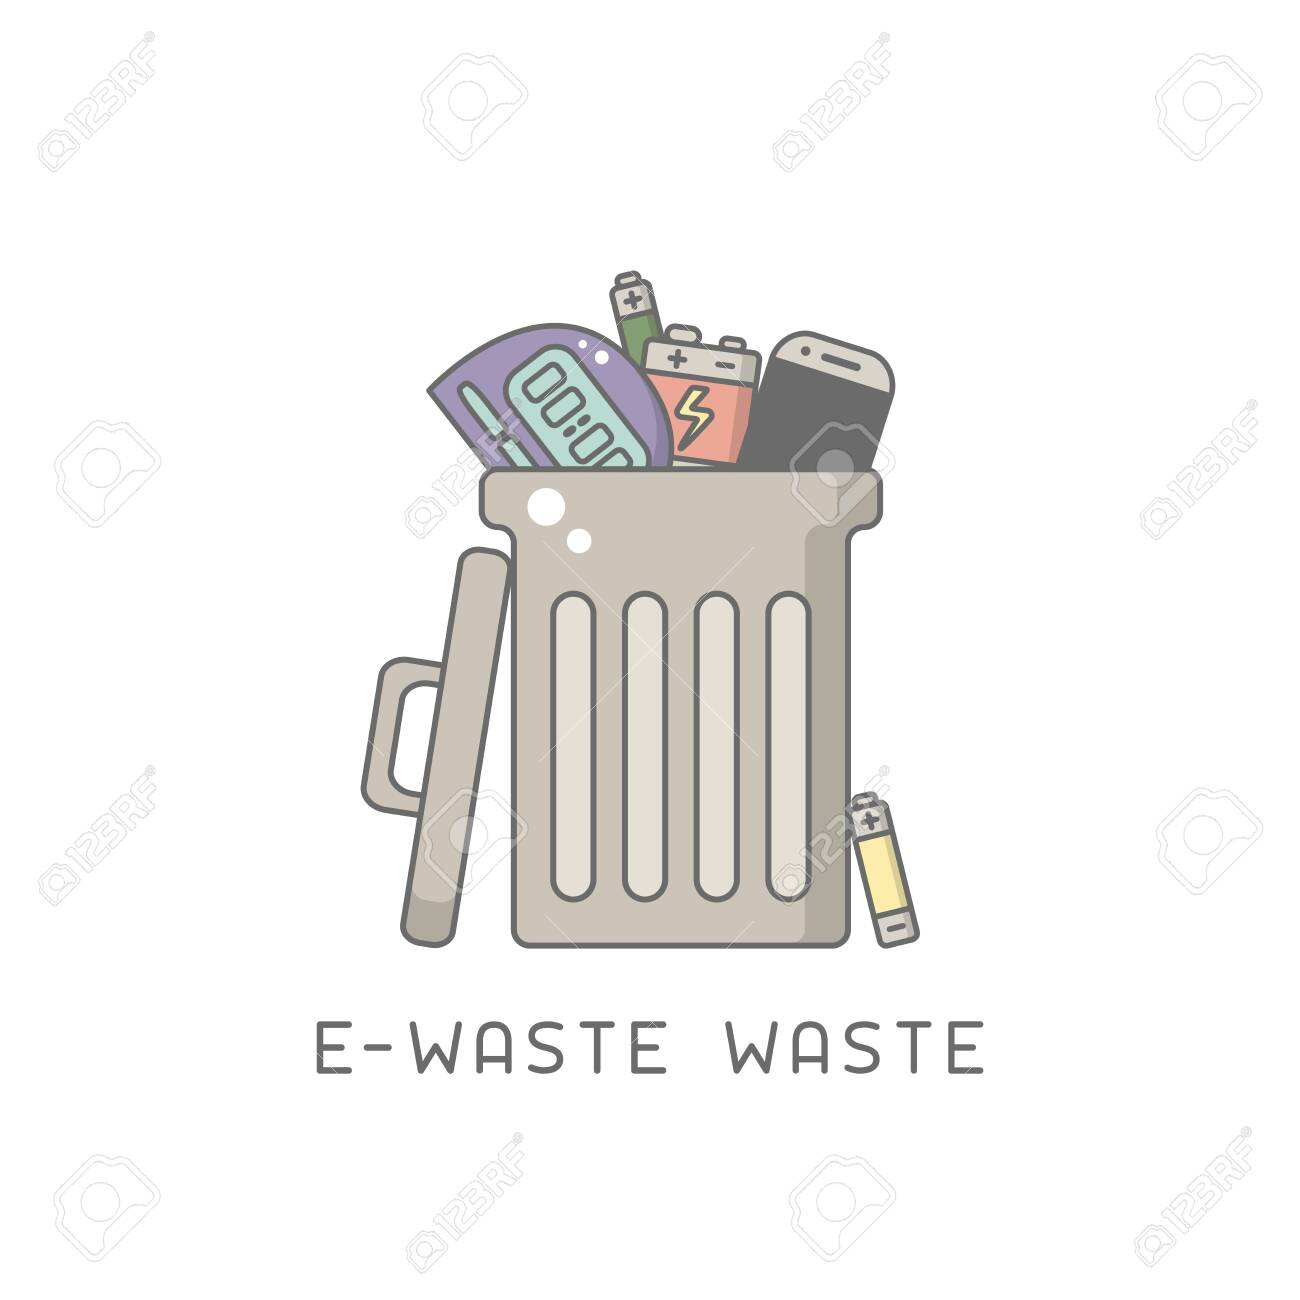 Trash can with e-waste. Cartoon style vector illustration. - 129013058